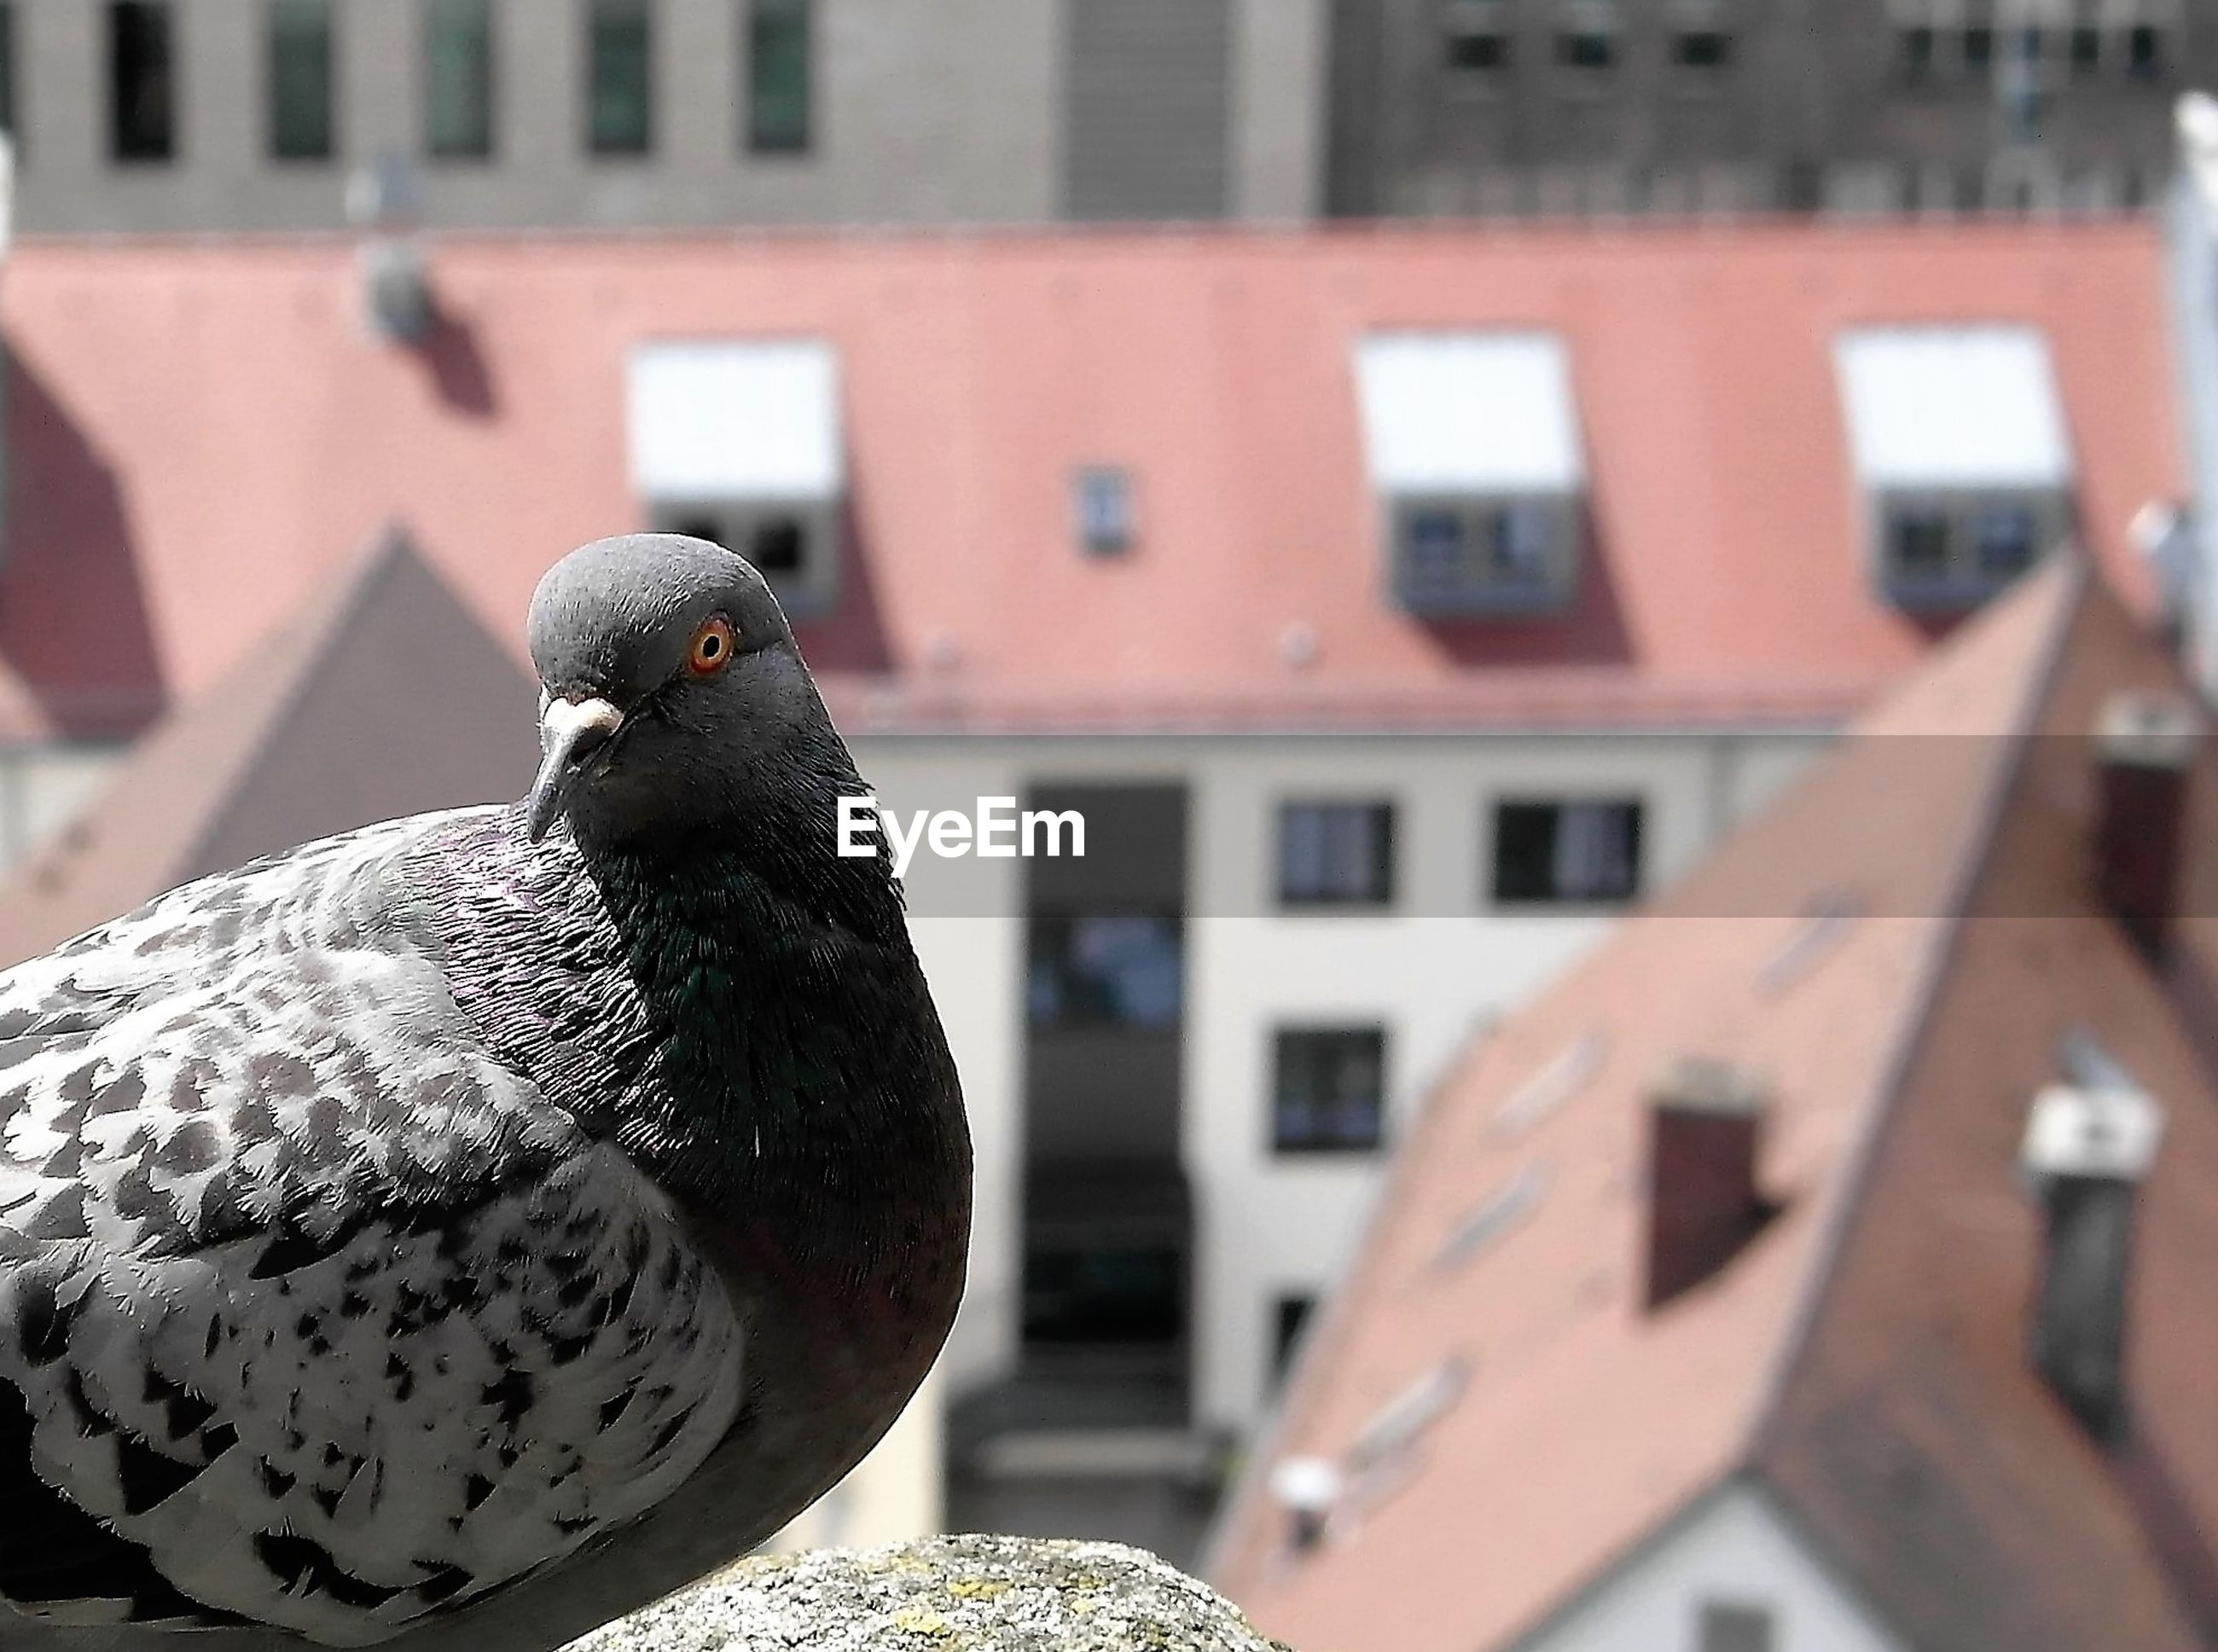 Close-up of pigeon against buildings